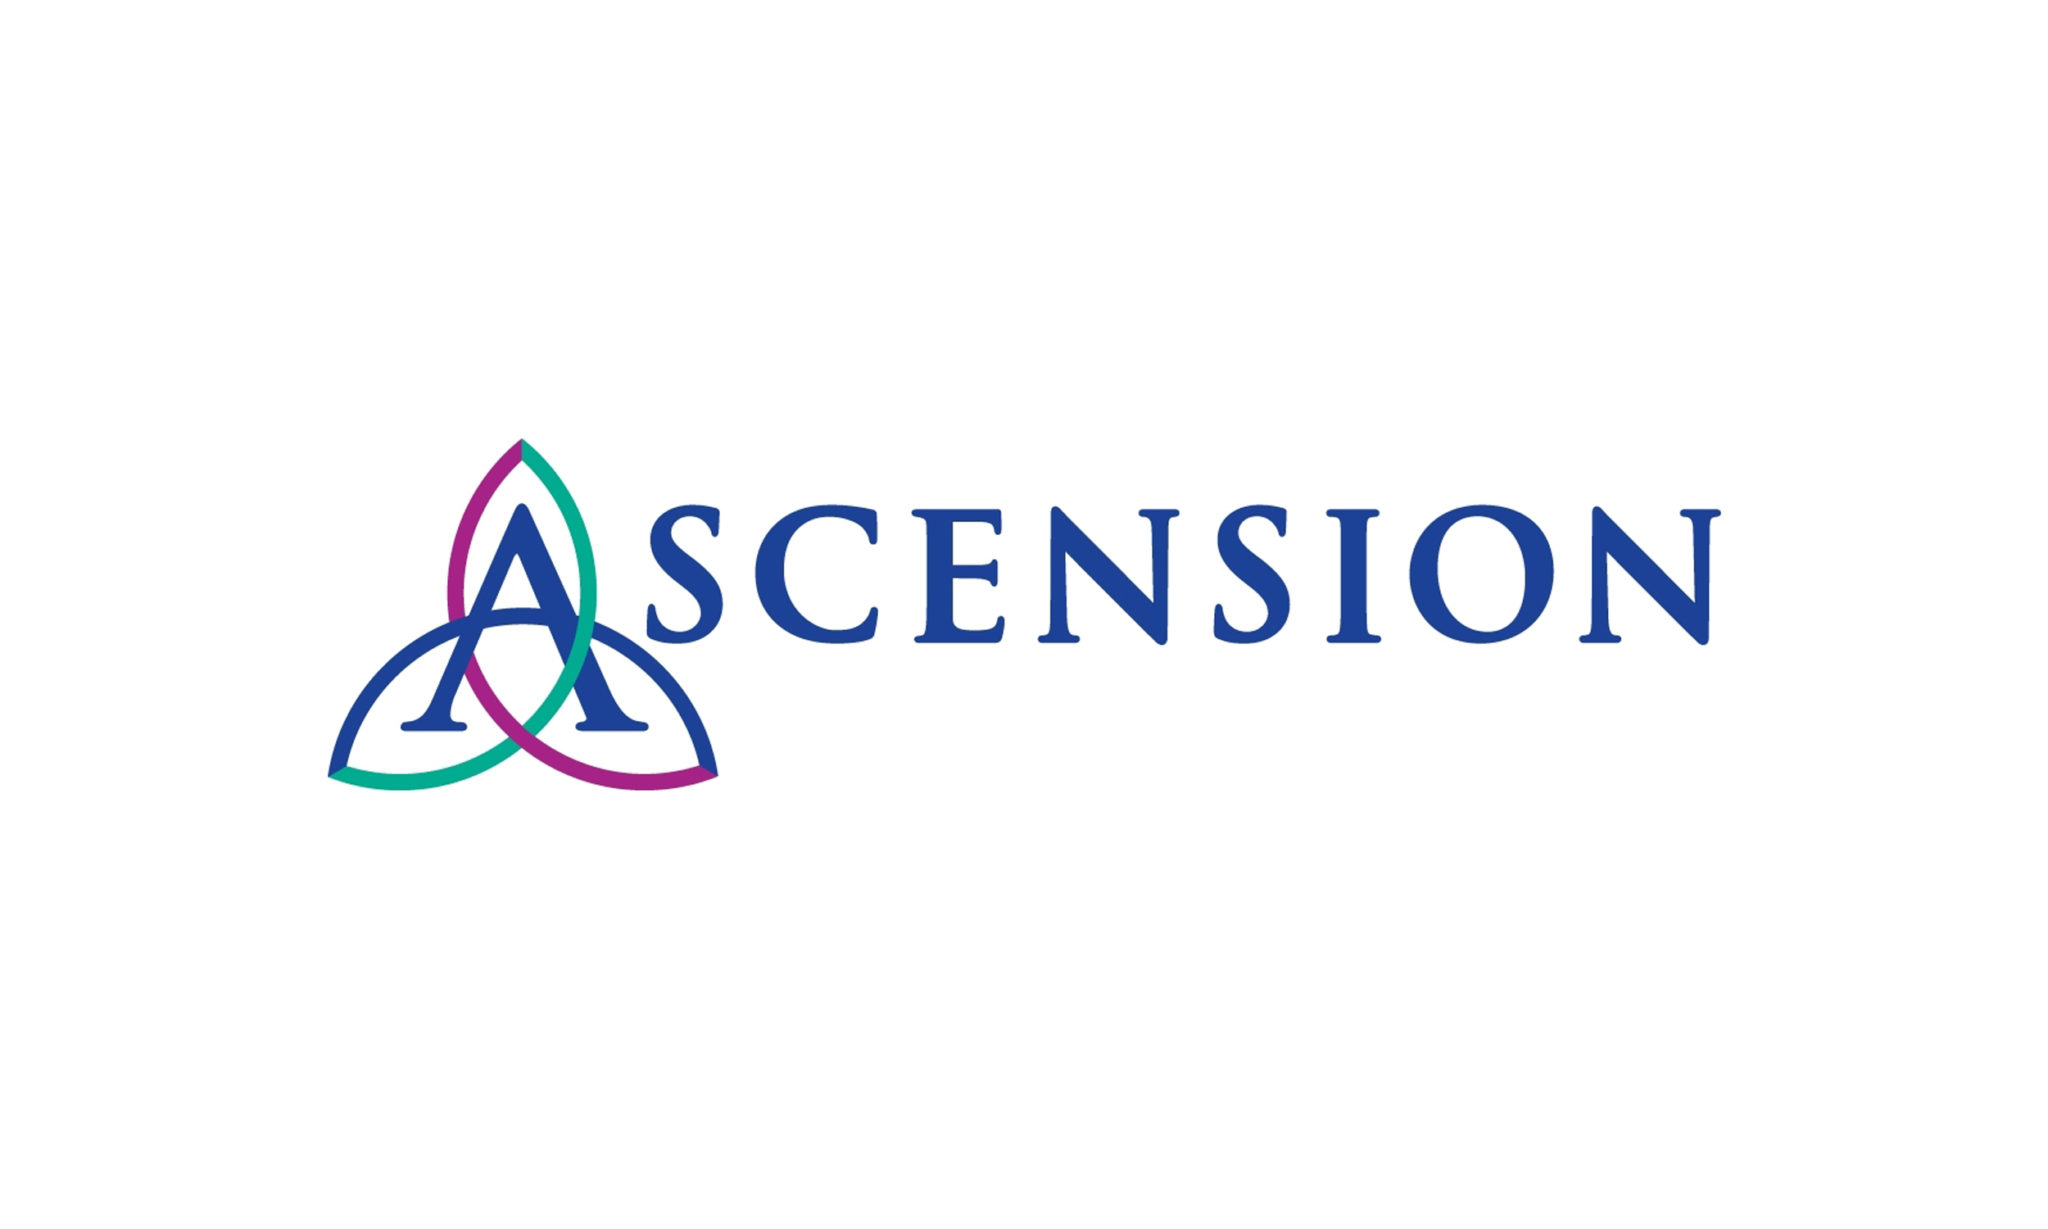 ascension-logo.jpg